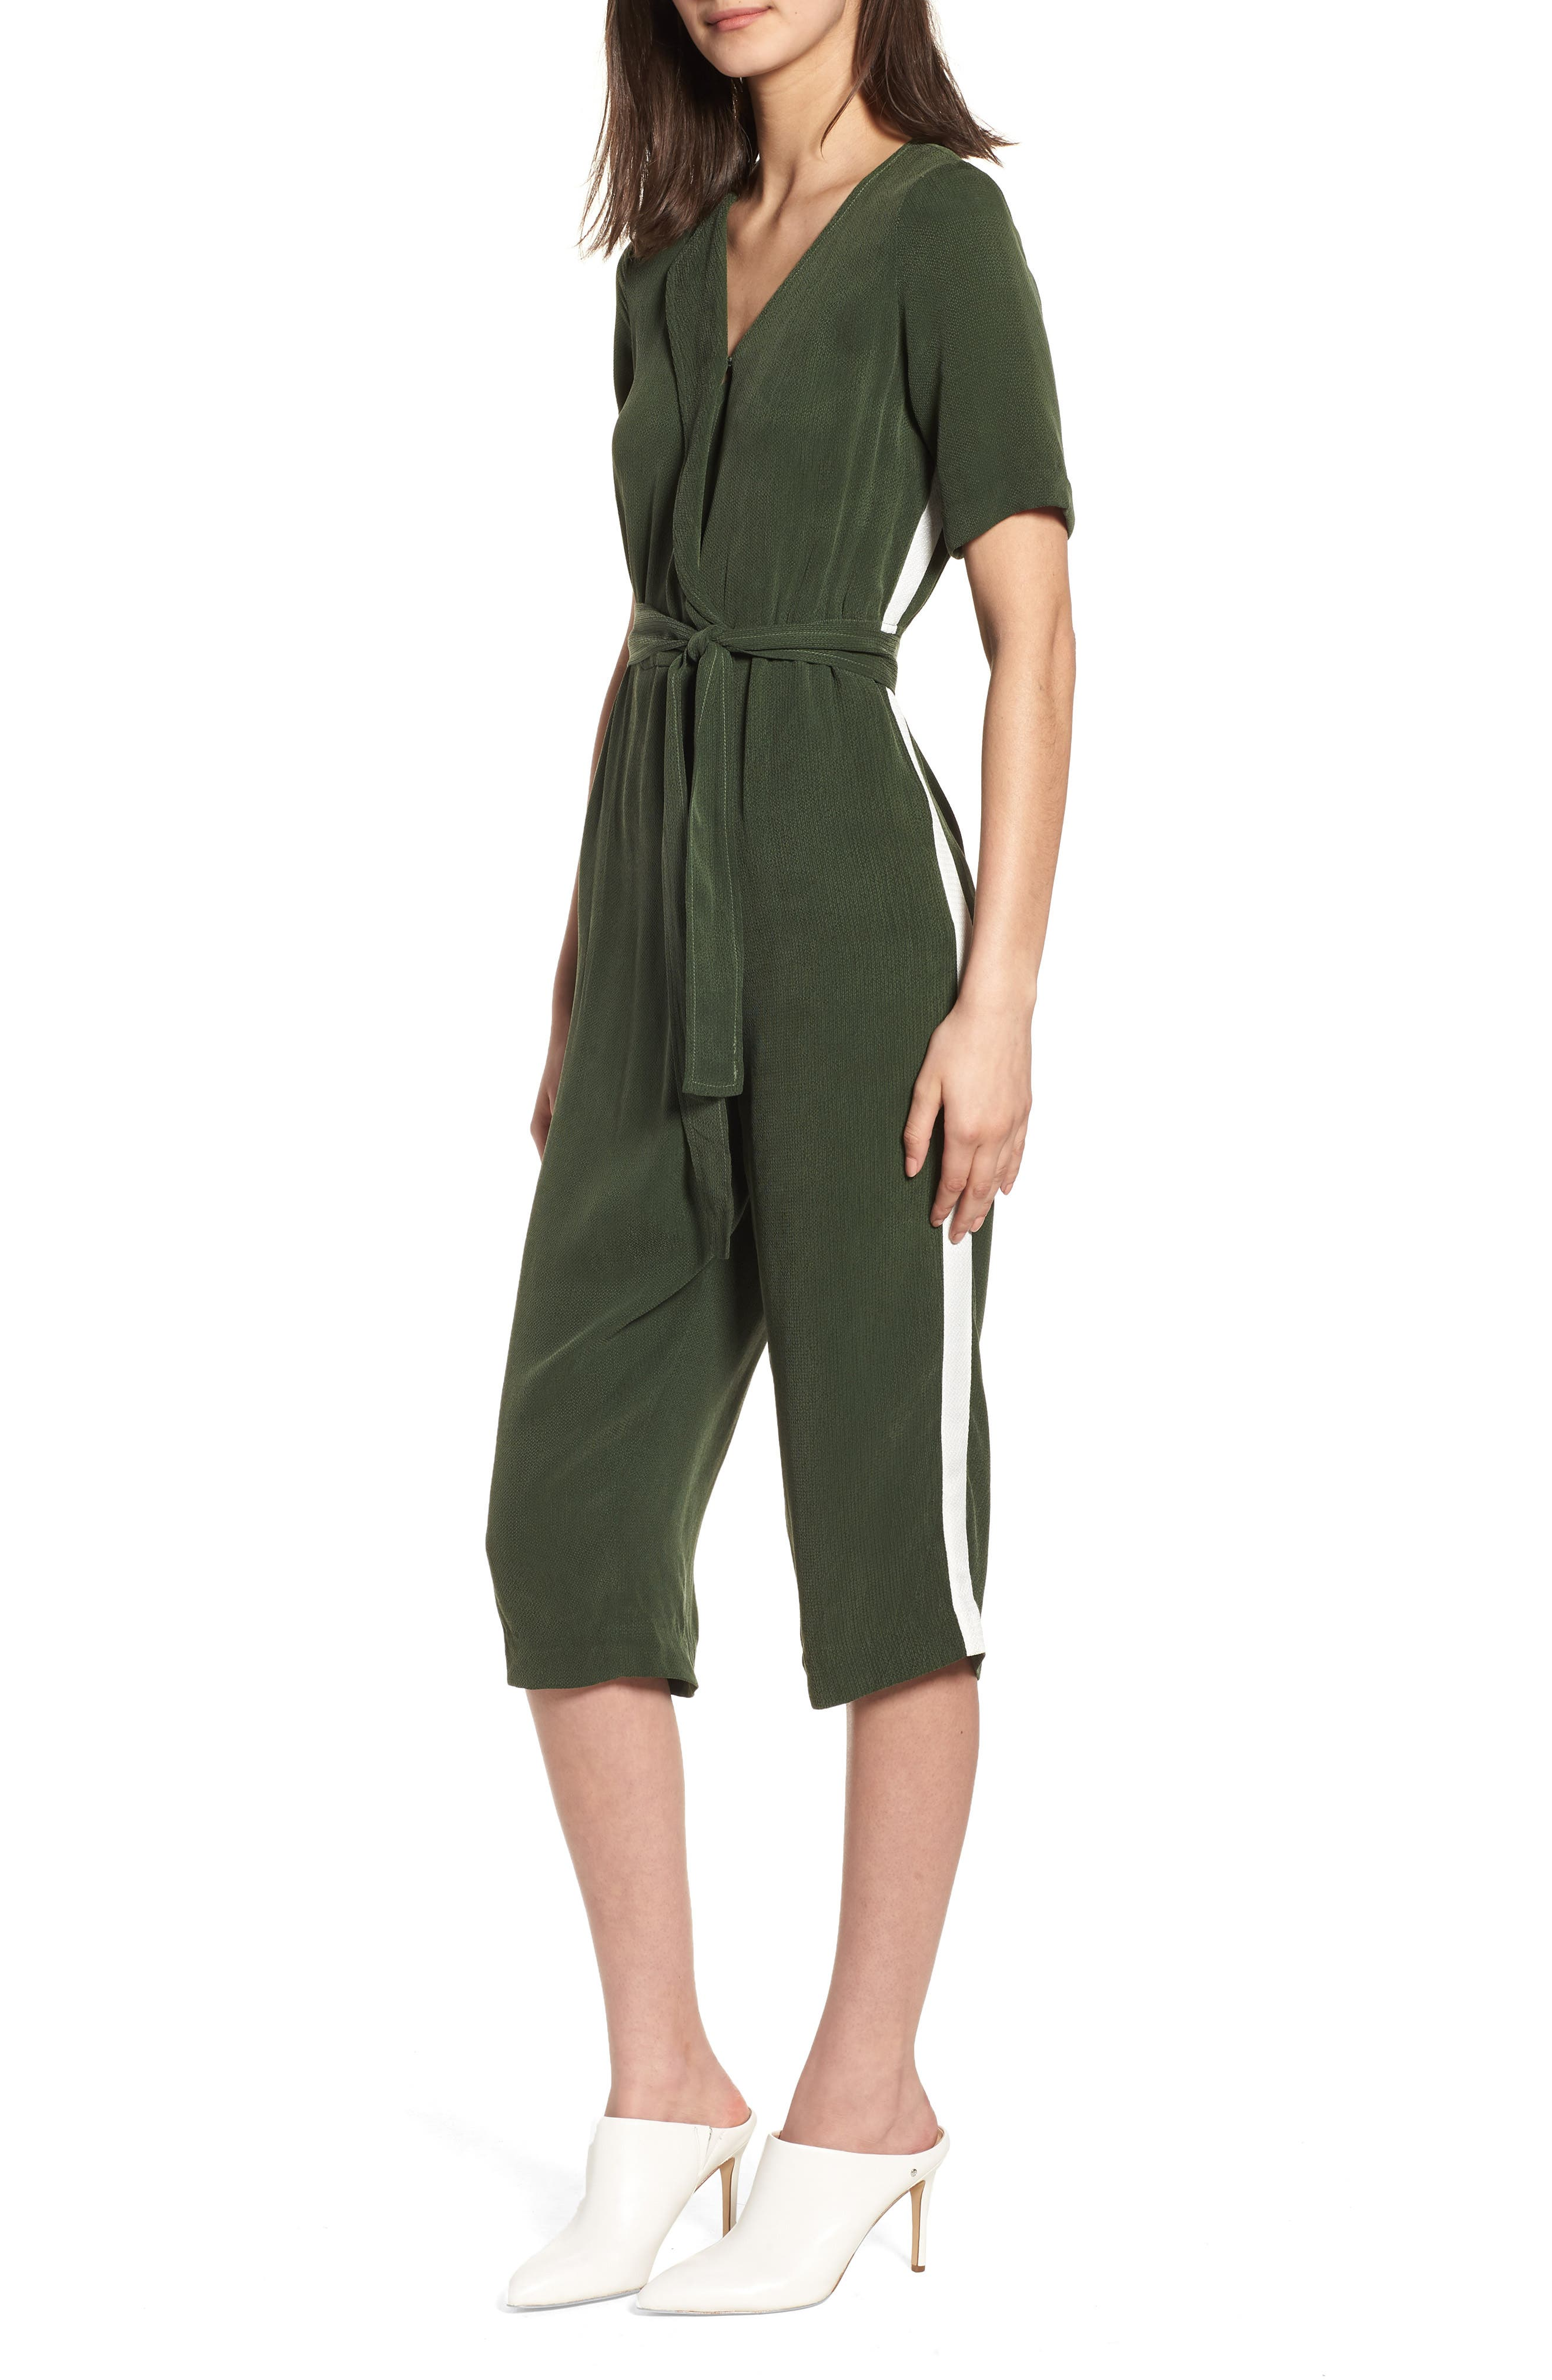 Downstairs Crop Jumpsuit,                             Main thumbnail 1, color,                             300